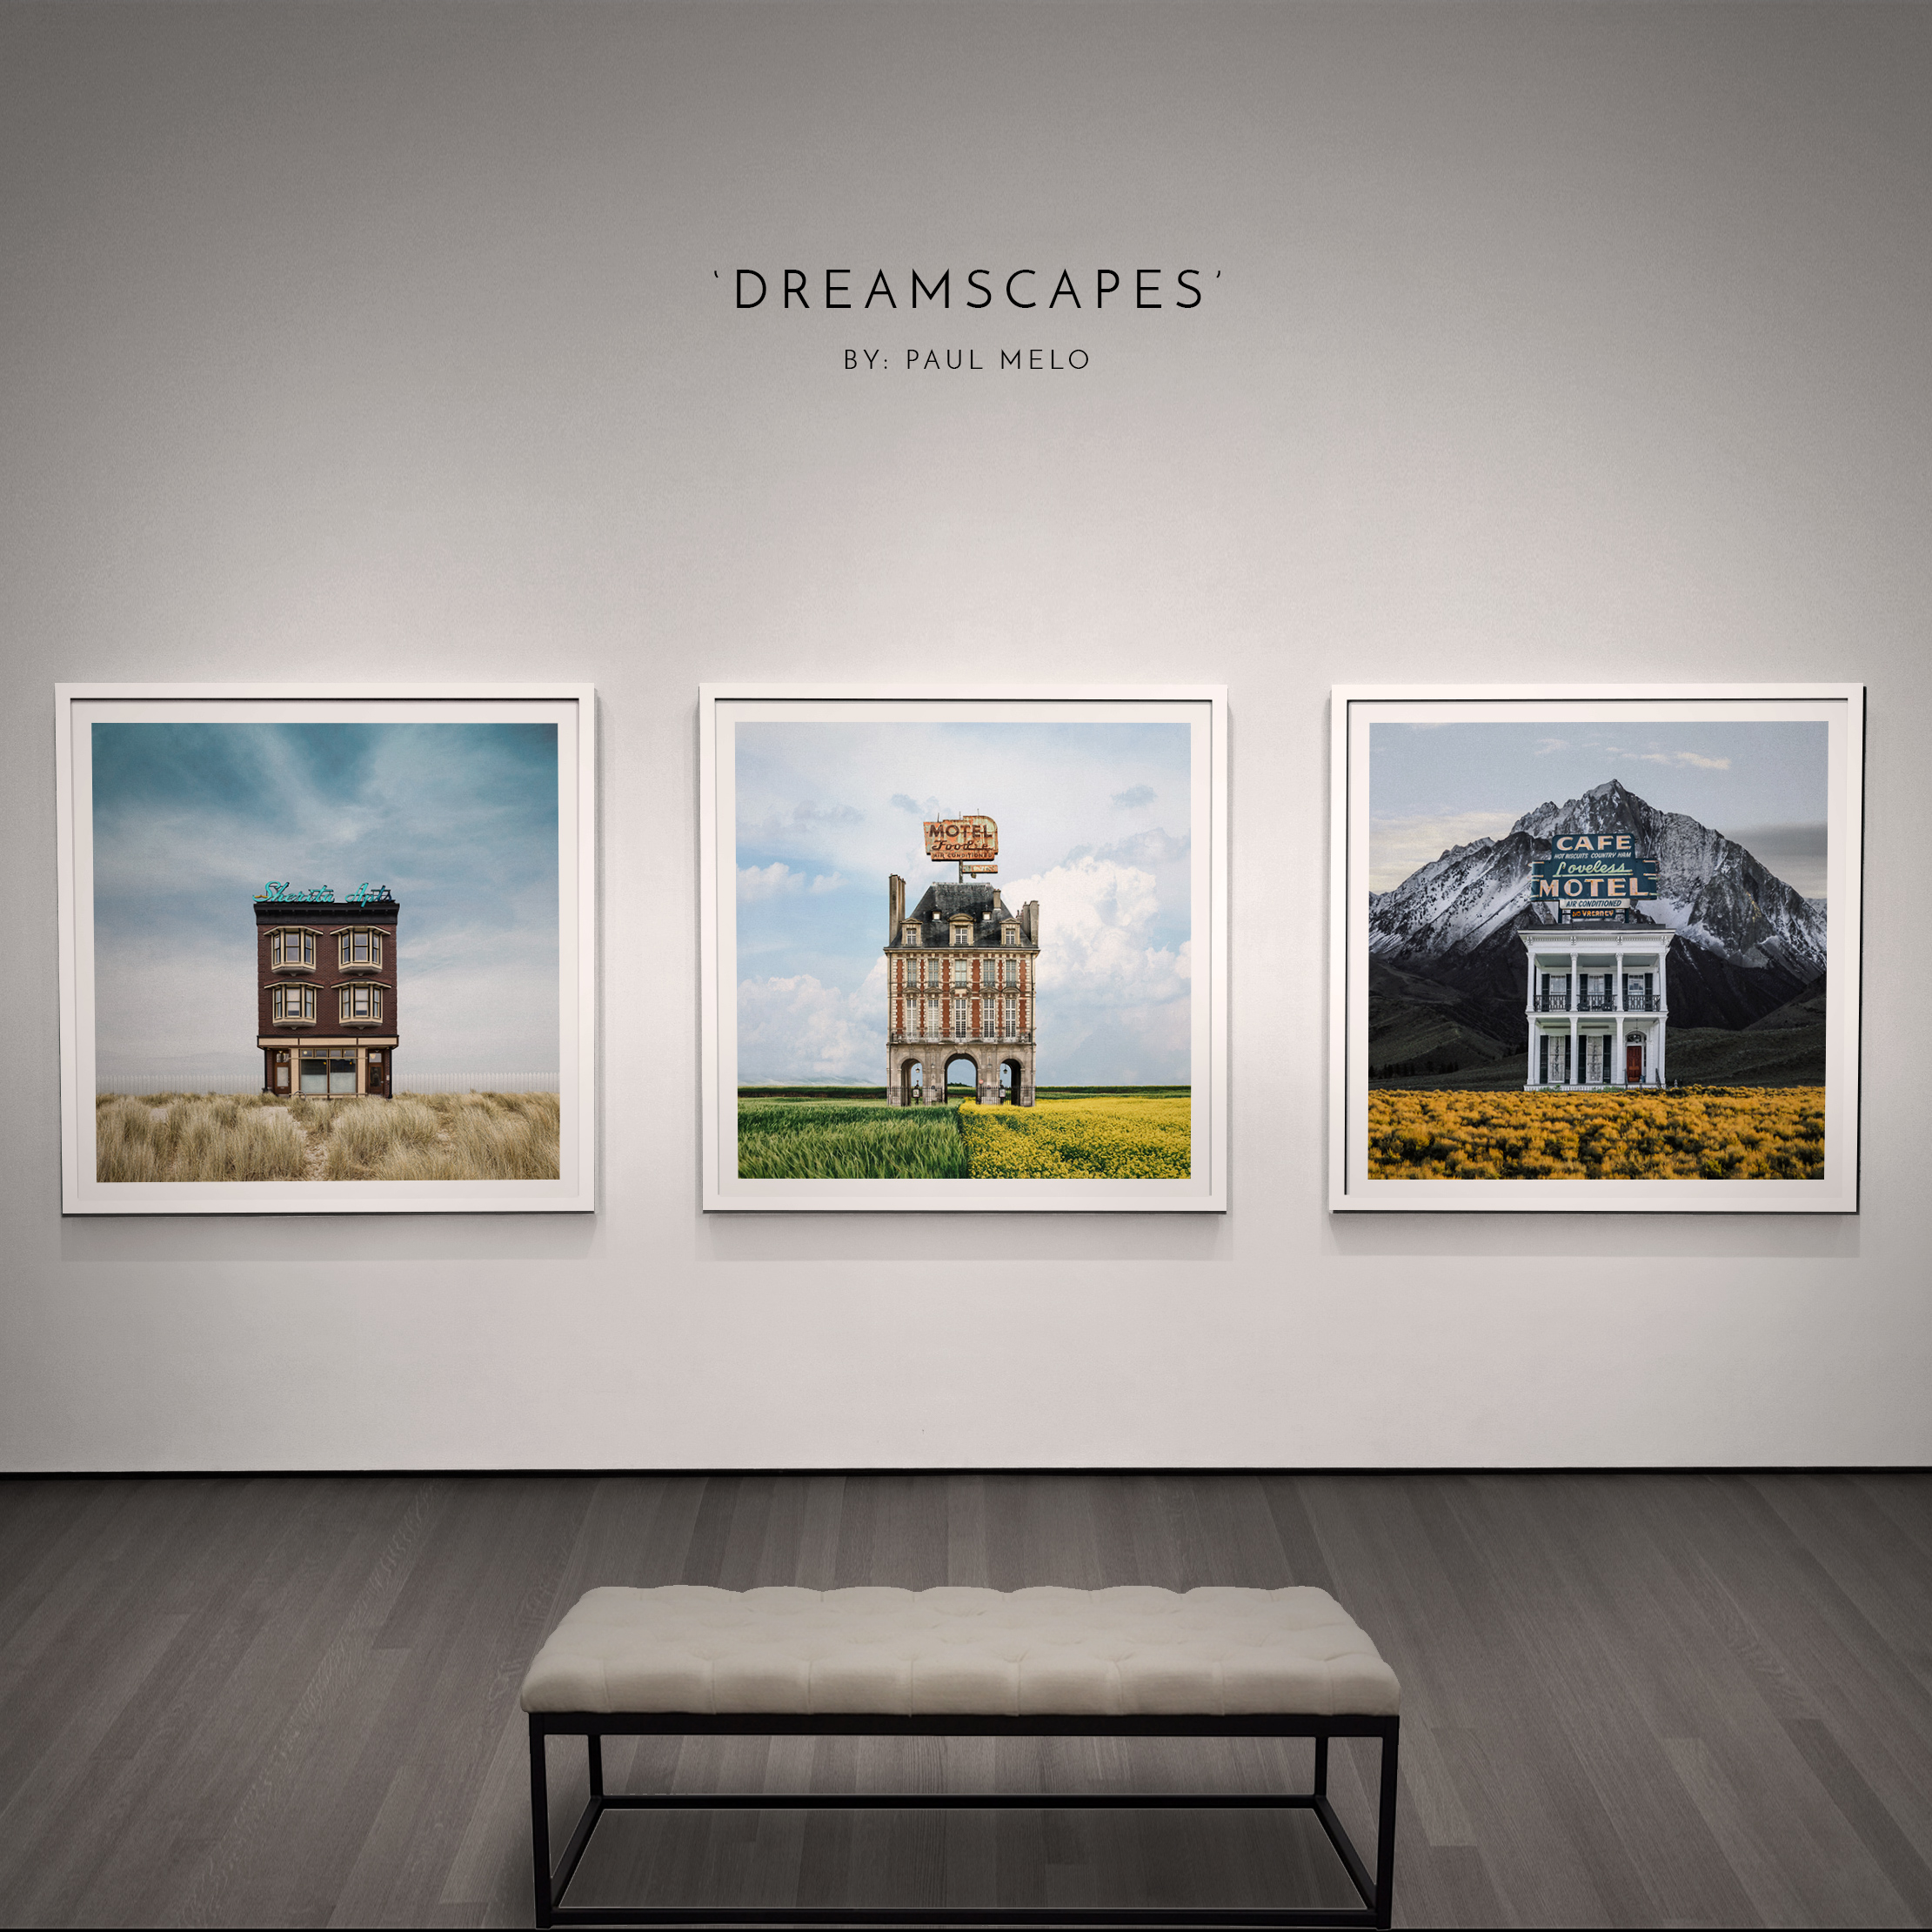 Gallery-Three_Dreamscapes.jpg